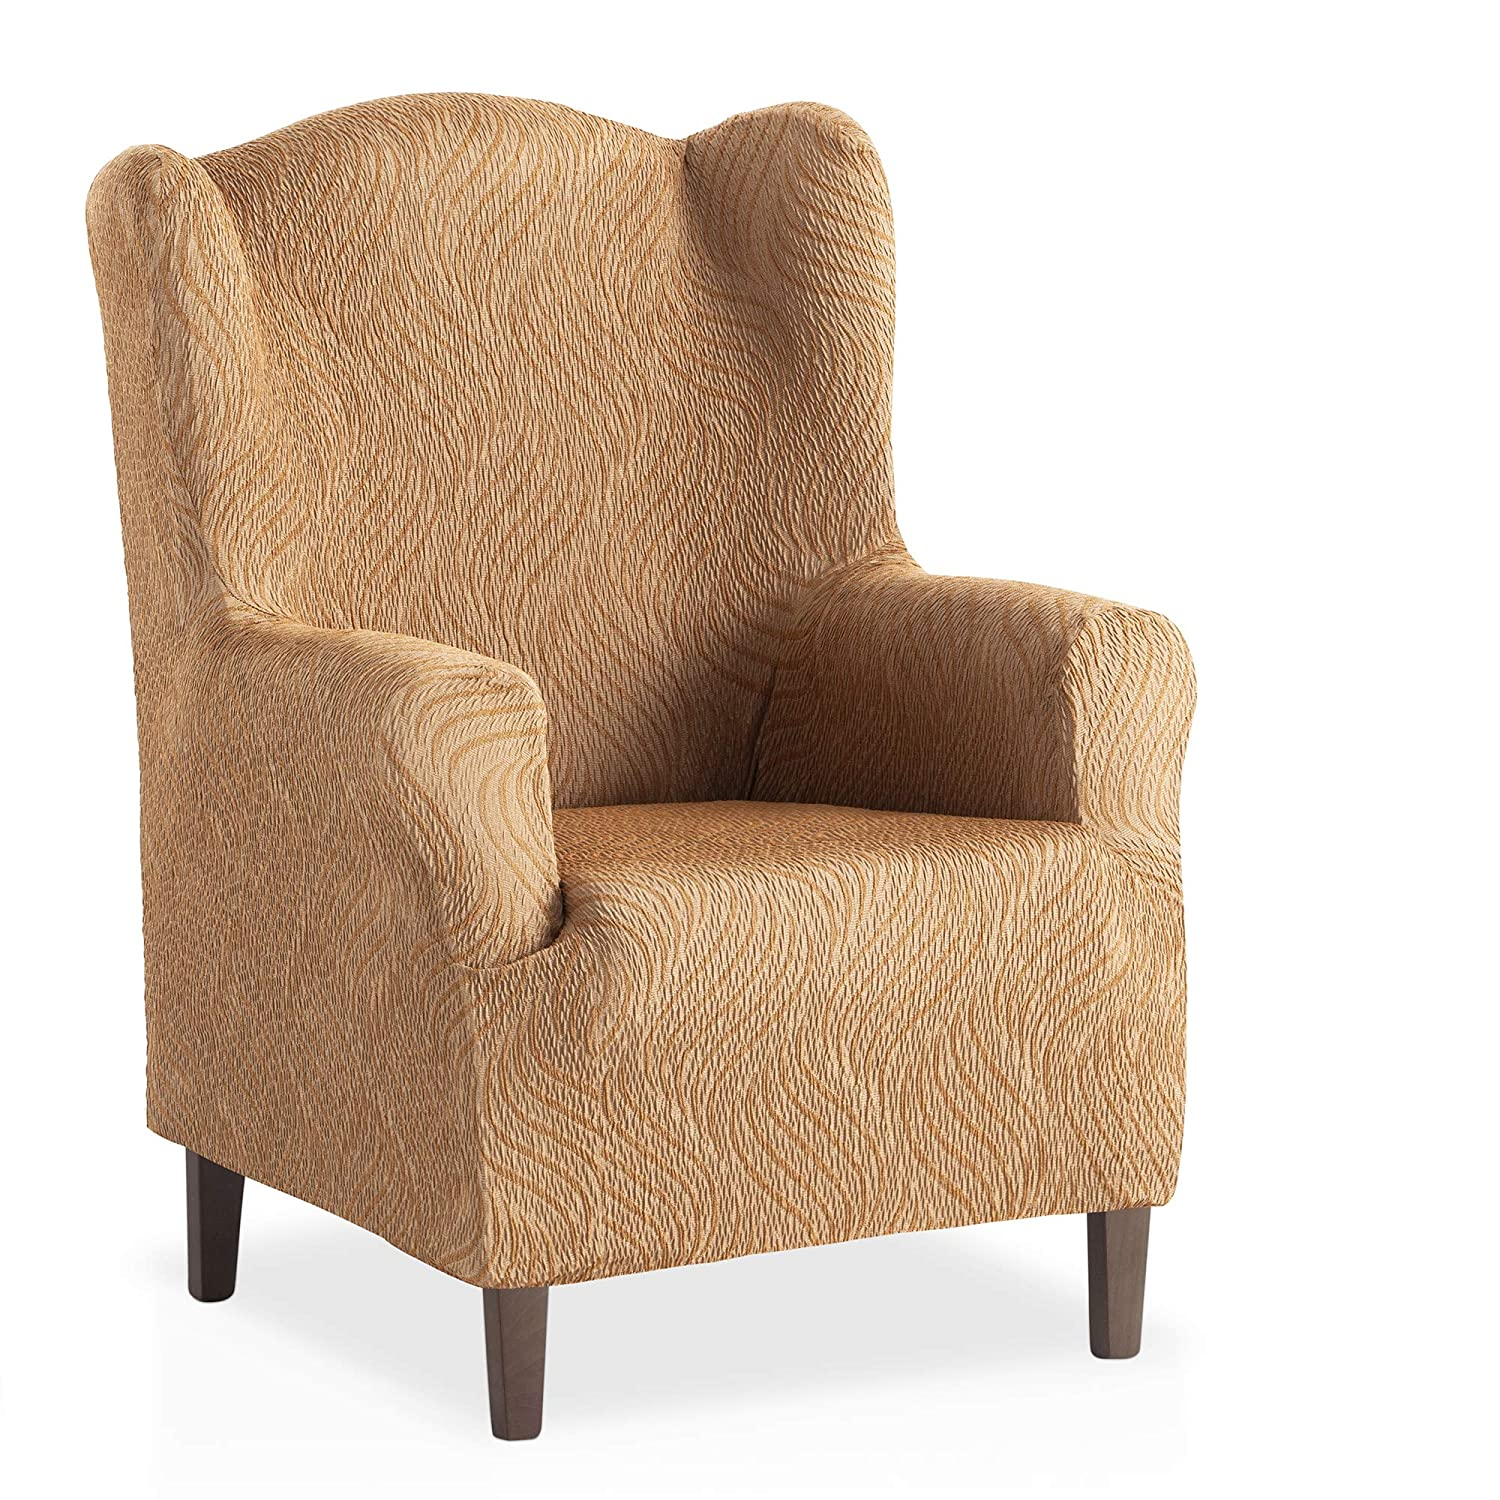 Bartali Elastic Winged Armchair Cover Aitana - Beige Colour - 1 Seater size (from 70 to 110 cm)